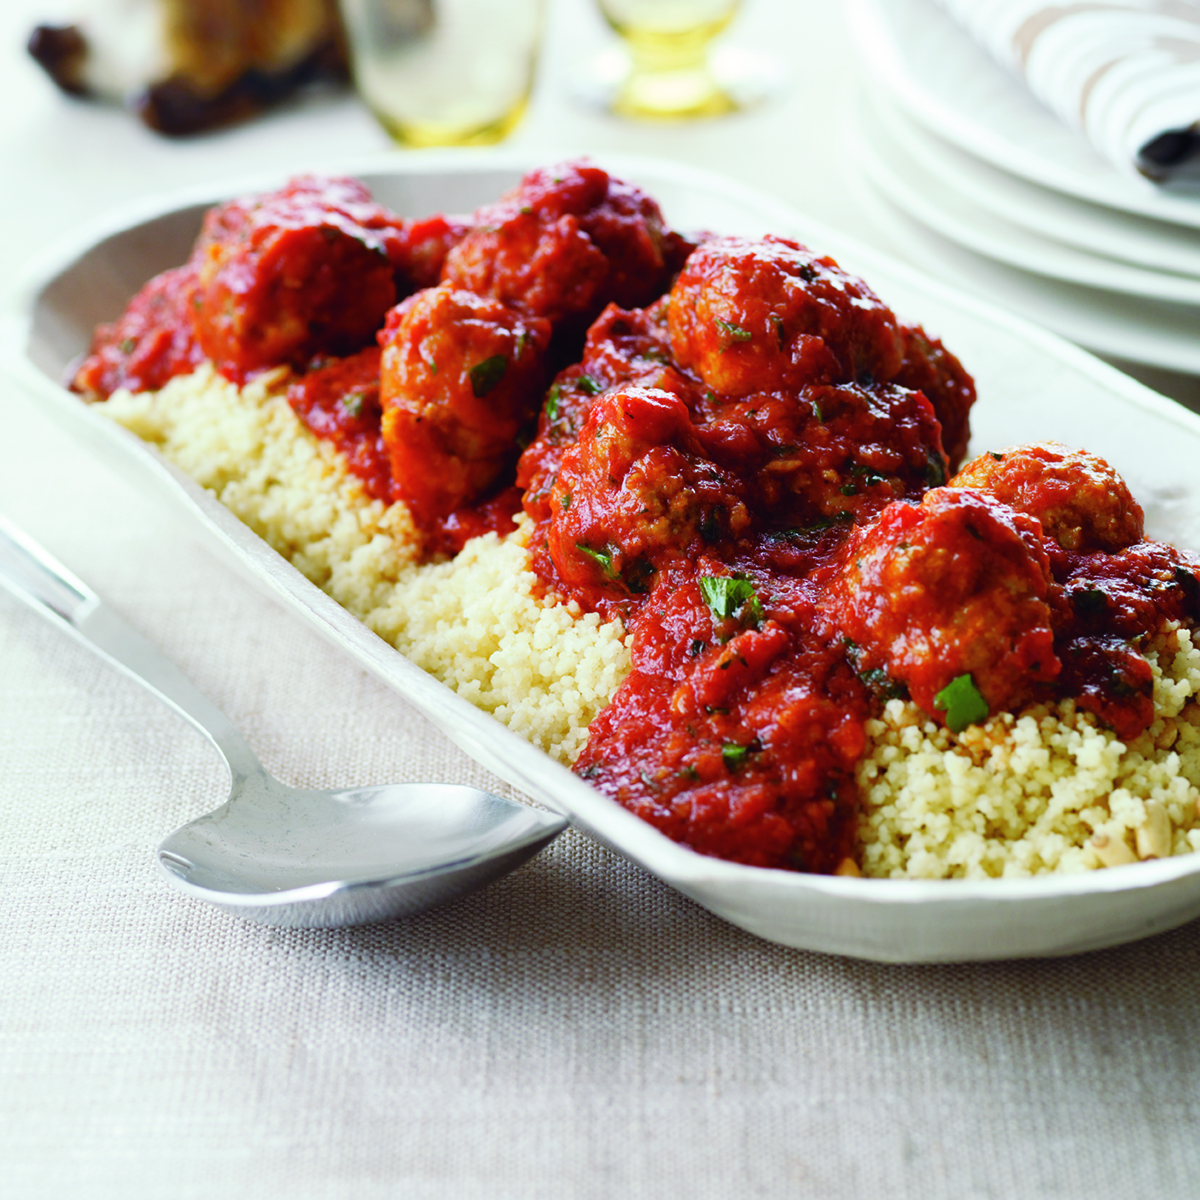 Lamb Meatballs in Tomato-Mint Sauce with Couscous